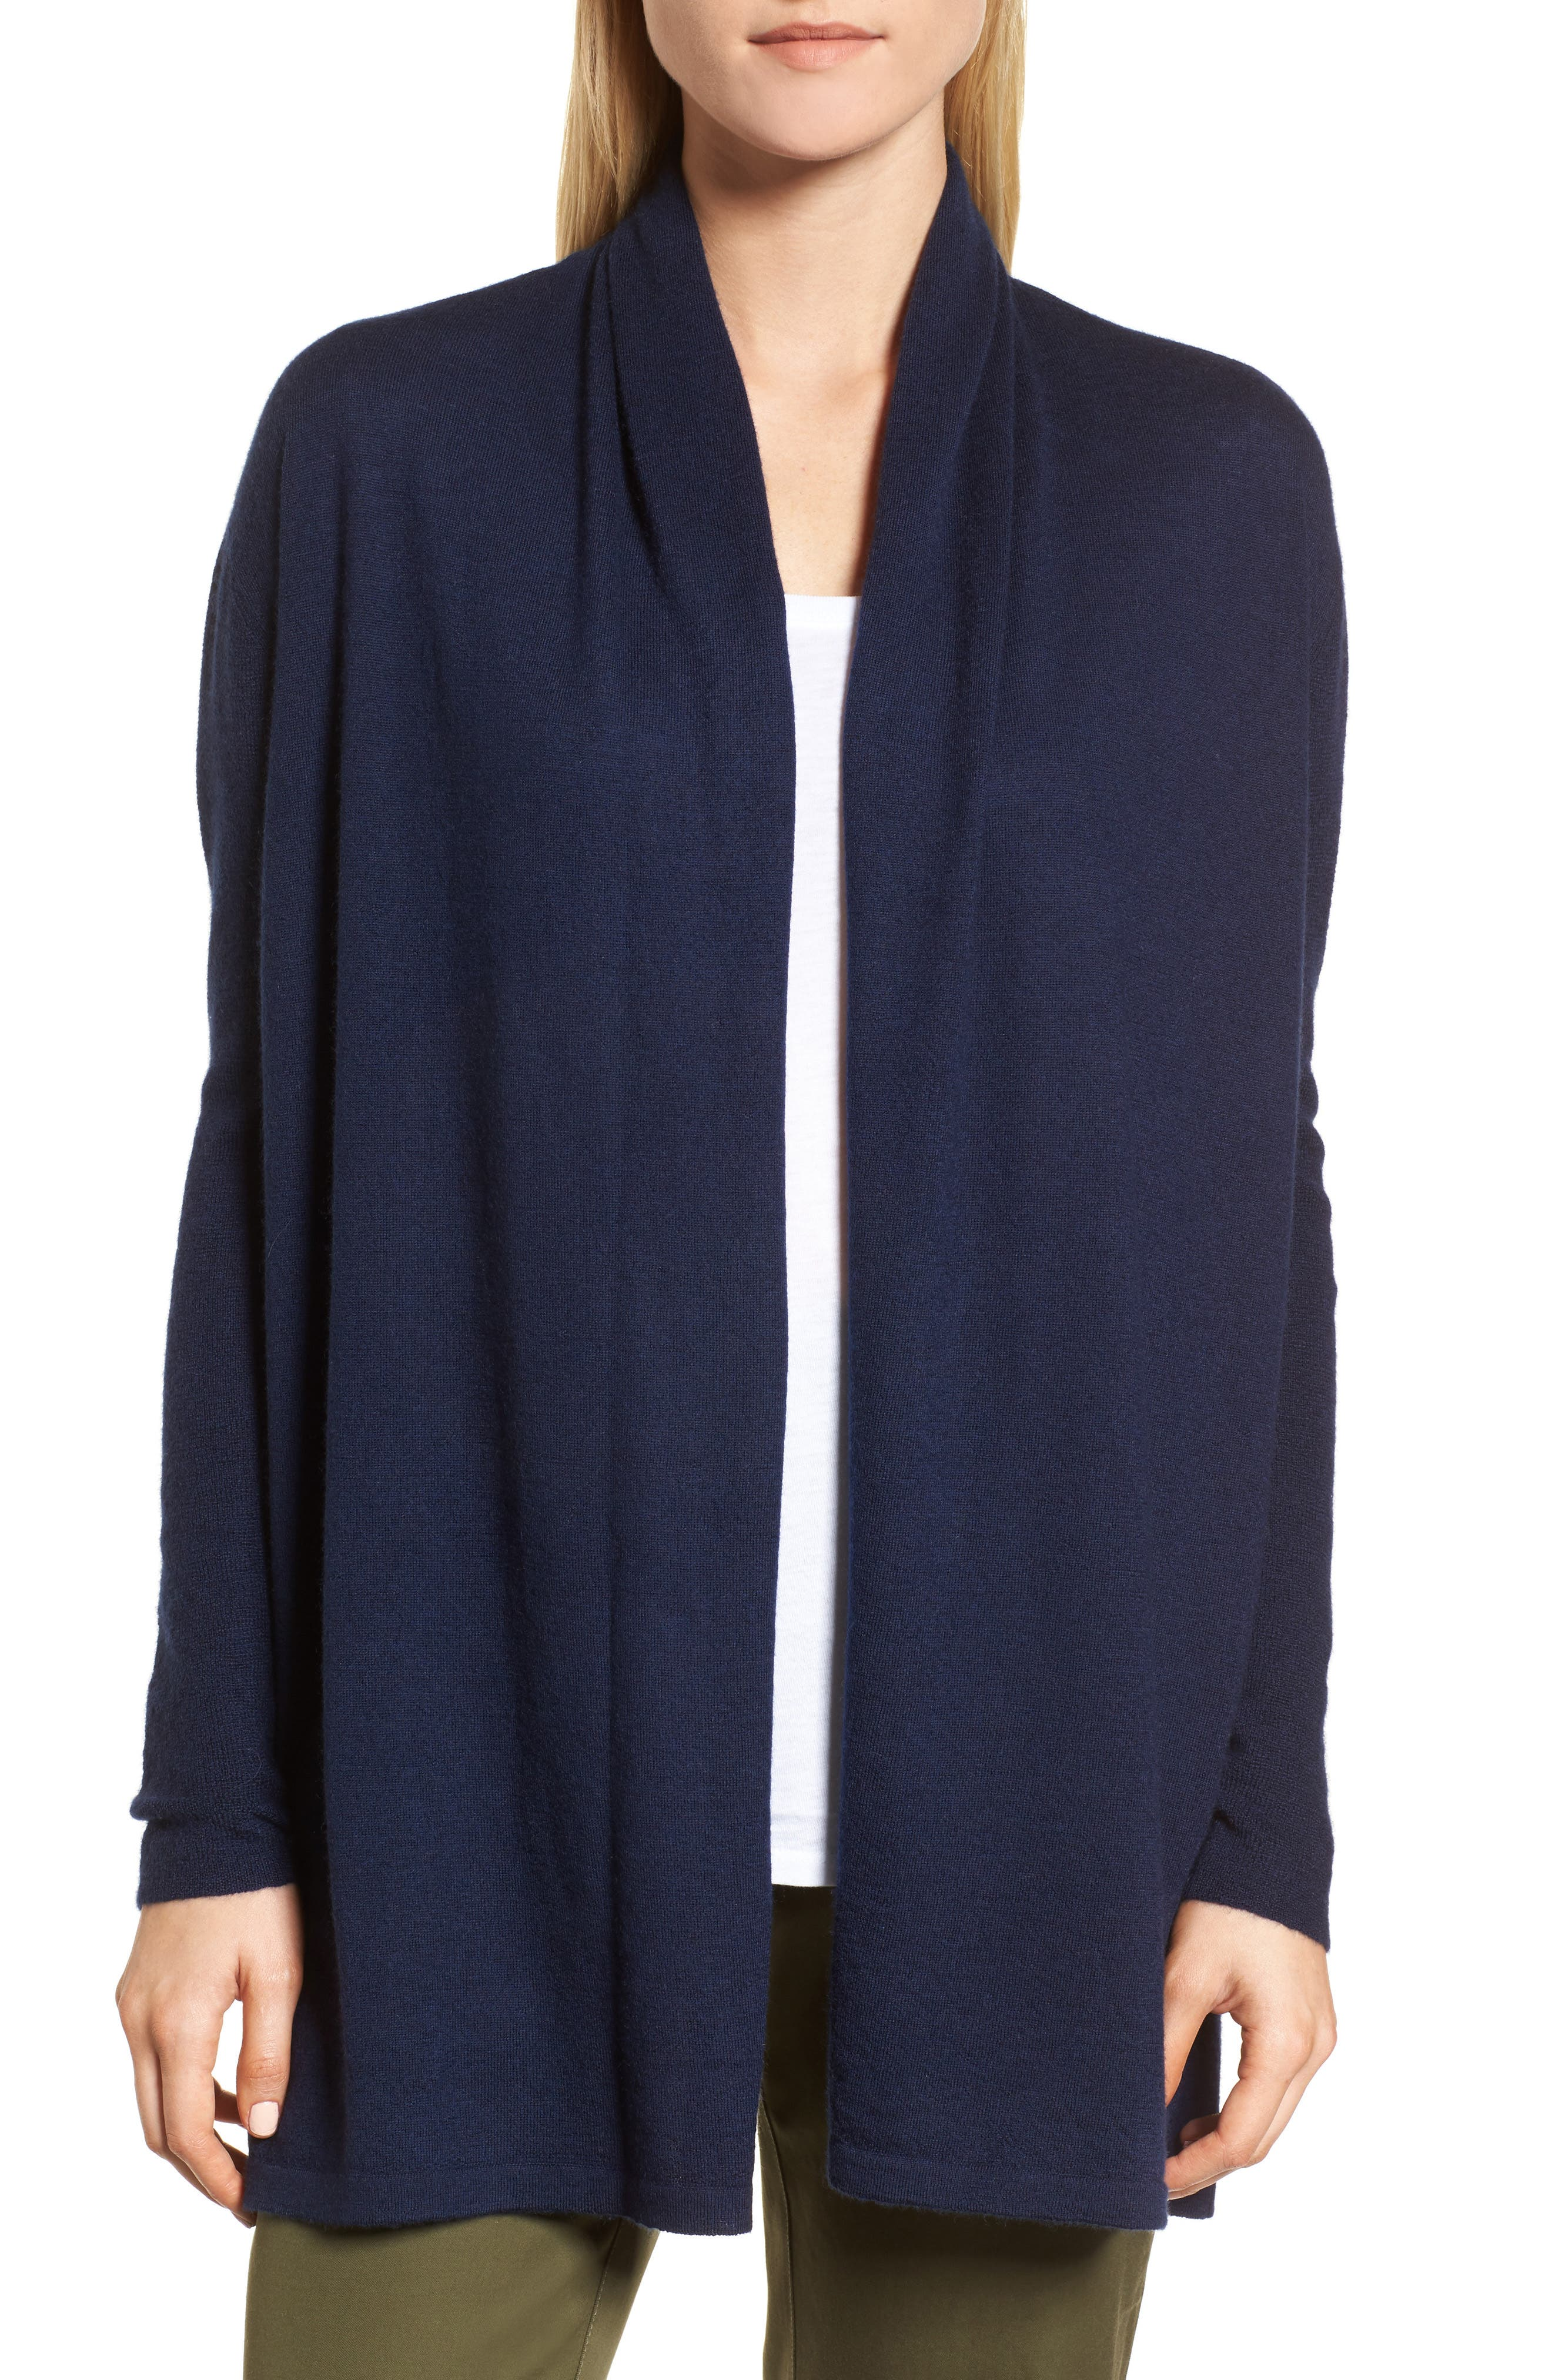 Alternate Image 1 Selected - Nordstrom Signature Cashmere Cardigan